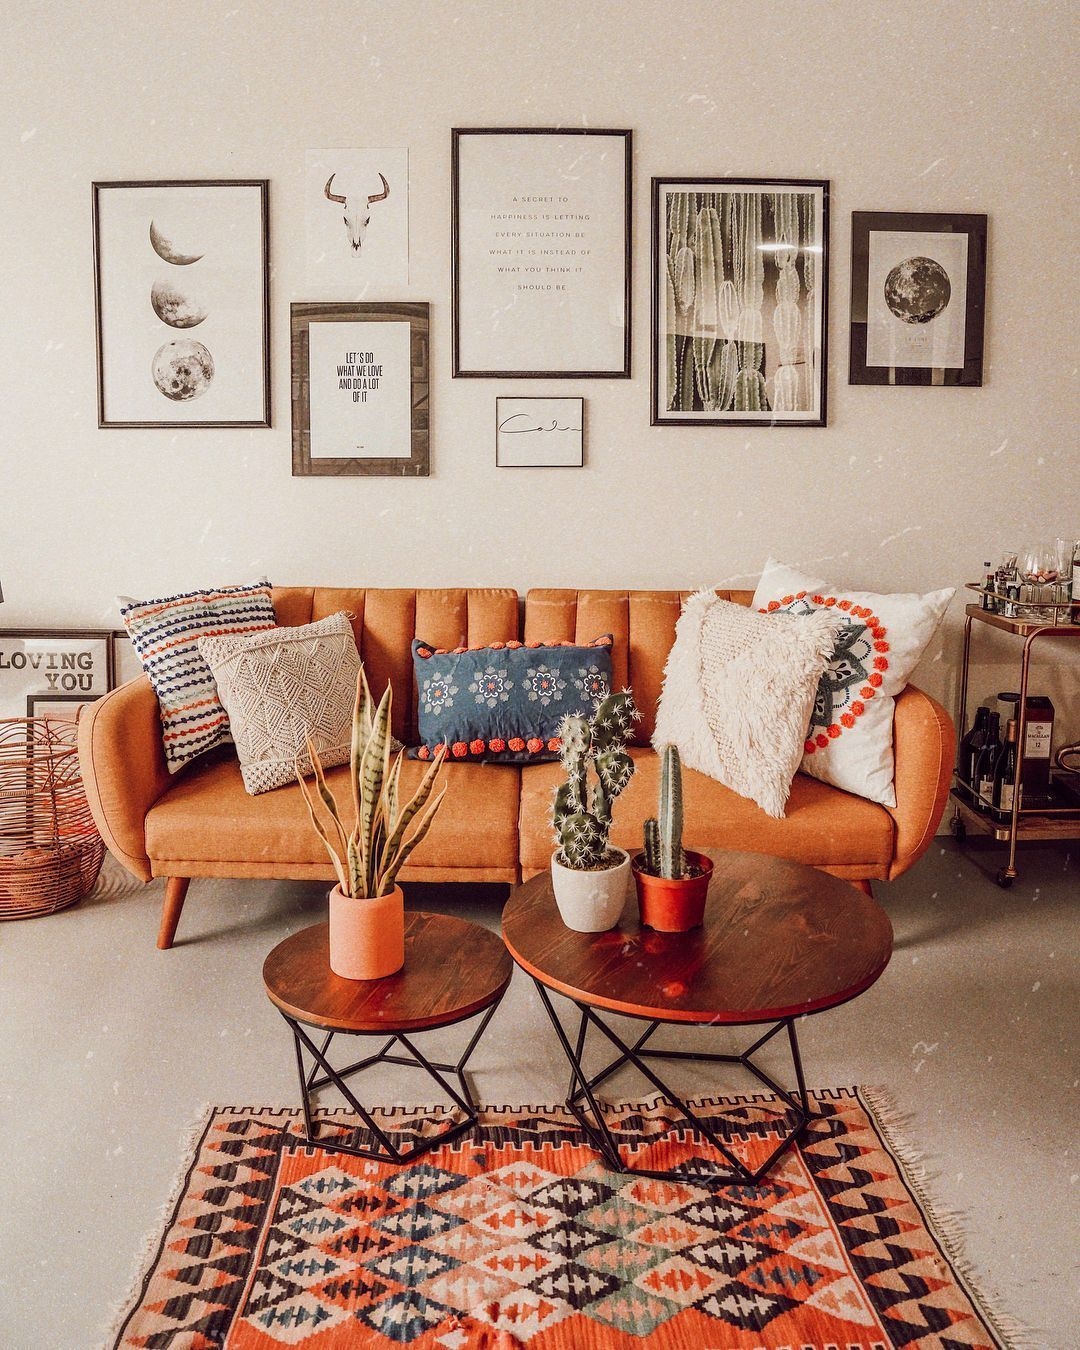 Creative Coffee Table Decorations Help You to Decorate Living Room – Interior Design Ideas & Home Decorating Inspiration – moercar